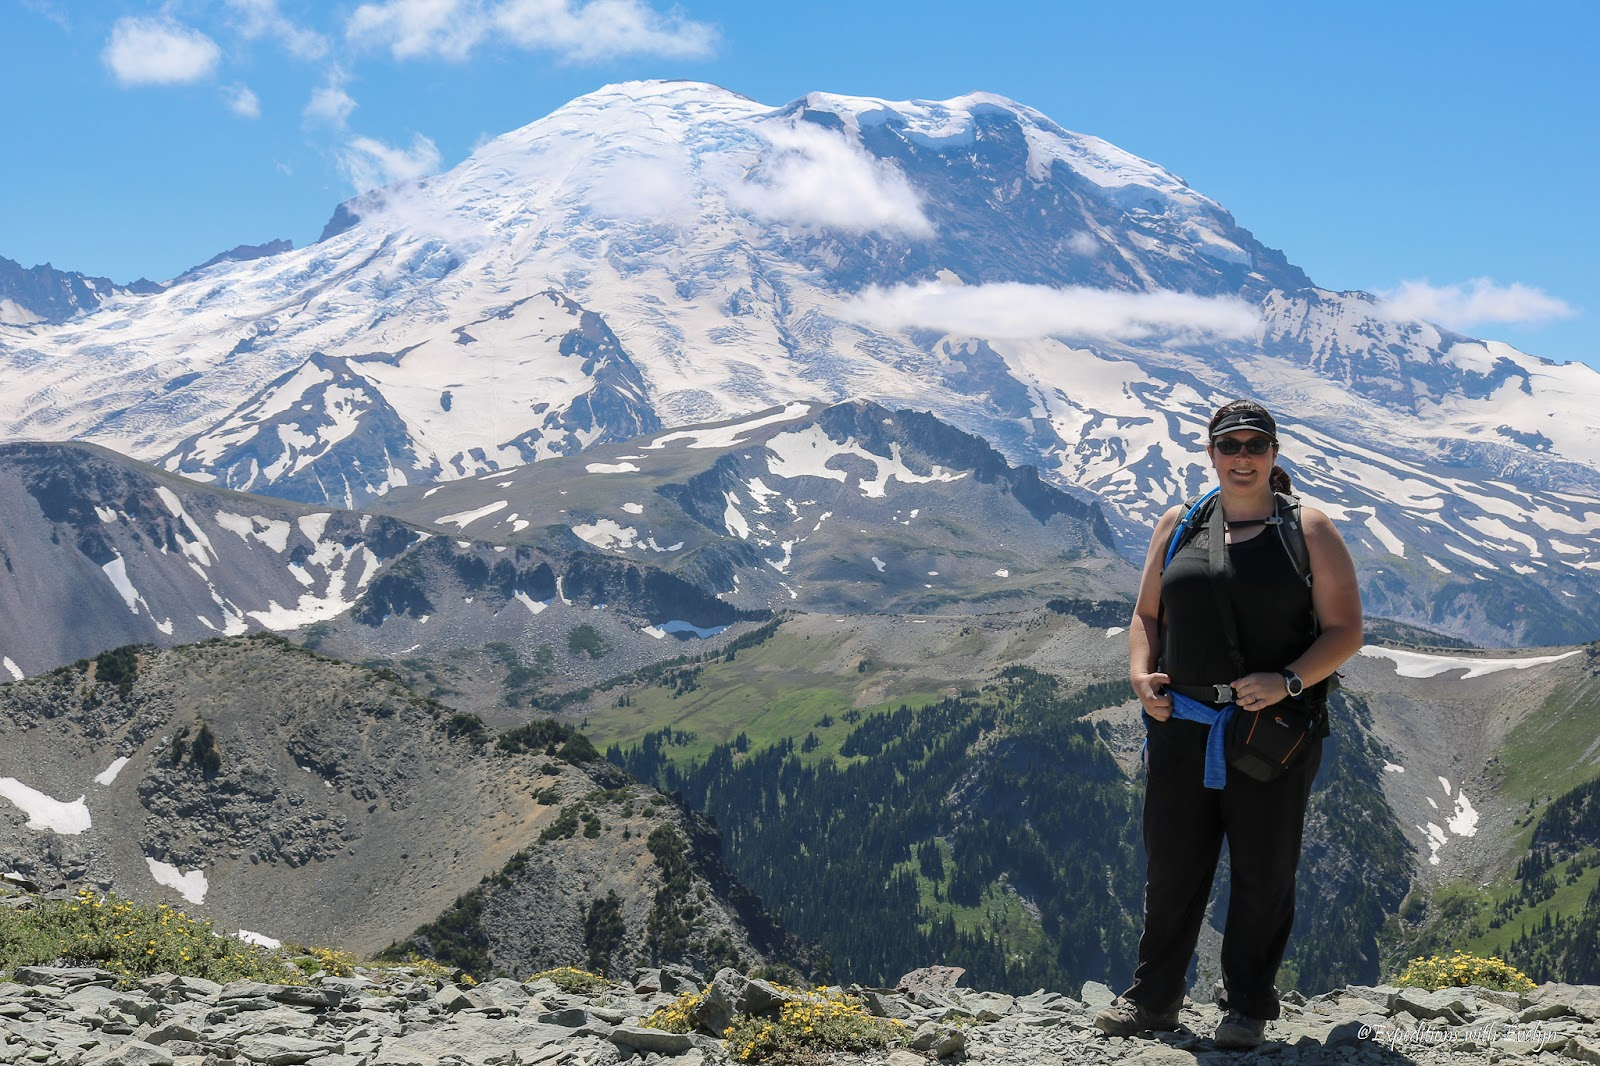 Good boots are key part of how to start hiking.  A female hiker poses on a rocky hill in front of a snow covered Mount Rainier.